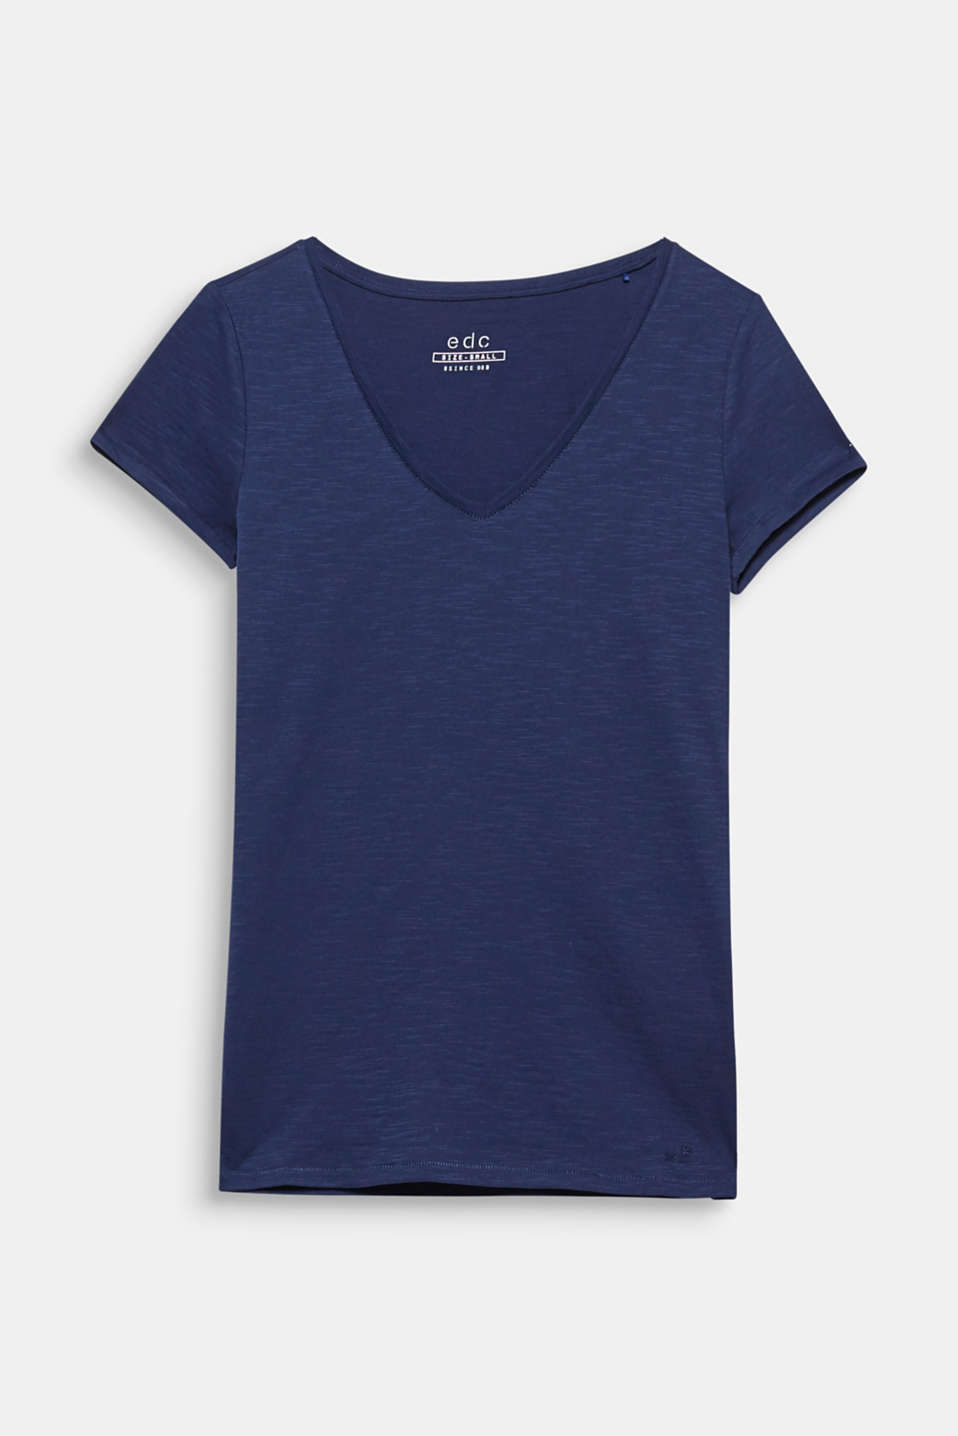 A must-have fashion basic: fitted T-shirt with a round neckline made of 100% cotton.